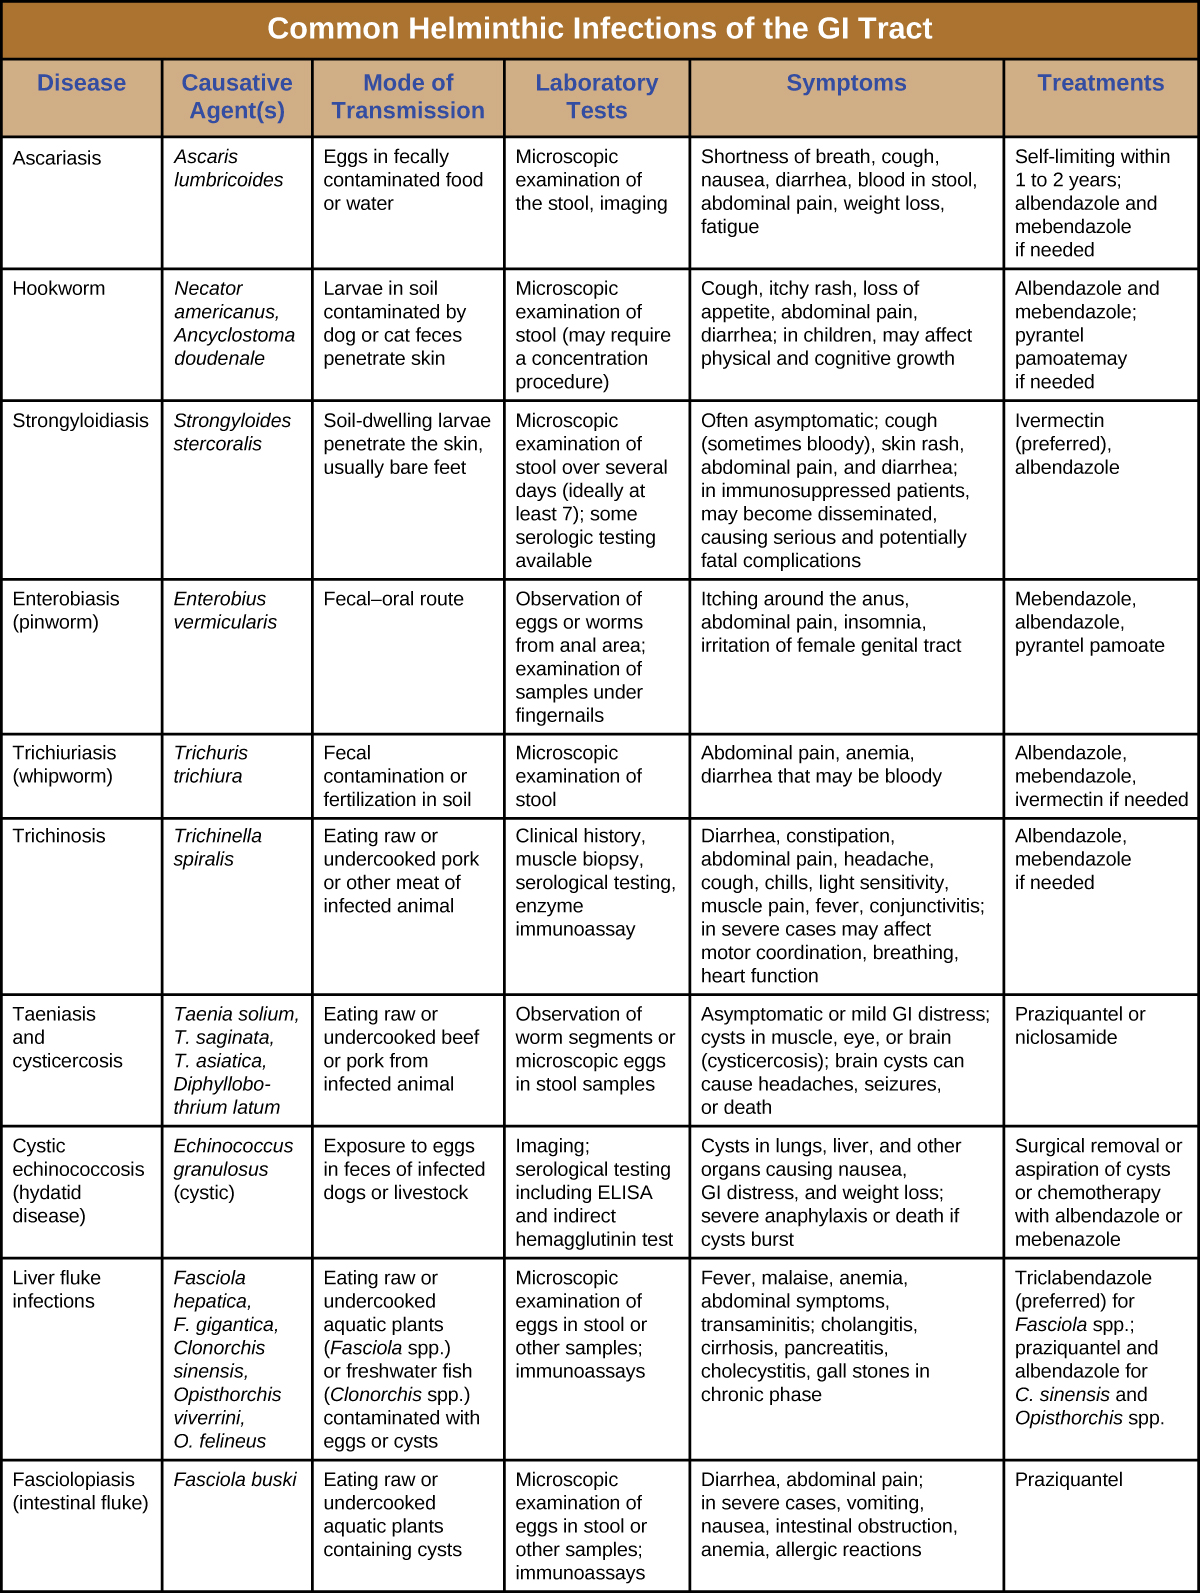 Table titled: Helminthic Infections of the GI Tract. Columns: Disease, Pathogen, Signs and Symptoms, Transmission, Diagnostic Tests, Antimicrobial Drugs. Ascariasis; Ascaris lumbricoides; Shortness of breath, cough, nausea, diarrhea, bloody stool, abdominal pain, weight loss, fatigue, worms in stool or sputum; Ingestion of eggs in fecally contaminated food and water; Microscopic observation of eggs in stool sample, X-rays, ultrasounds or MRIs; Albendazole, mebendazole. Hookworm; Necator americanus, Ancyclostoma doudenale; Cough, itchy rash, wheezing, loss of appetite, abdominal pain, diarrhea, cutaneous larva migrans; Larvae in soil contaminated by dog or cat feces penetrate the skin; Microscopic observation of eggs in stool sample; Albendazole, mebendazole, pyrantel pamoate, thiabendazole. Hydatid disease (cystic echinococcosis); Echinococcus granulosus ; Cysts in lungs, liver, and other organs causing nausea, GI distress, and weight loss; severe anaphylaxis or death if cysts burst; Exposure to eggs in feces of infected dogs or livestock; CT, MRI, or ultrasonography to detect cysts; ELISA, indirect hemagglutinin test; Albendazole or mebenazole. Intestinal flukes (fasciolopsiasis); Fasciolopsis buski; Diarrhea, abdominal pain; in severe cases, vomiting, nausea, intestinal obstruction, anemia, allergic reactions; Ingestion of raw or undercooked aquatic plants containing cysts; Microscopic examination of eggs in stool or other samples; immunoassays; Praziquantel. Liver flukes; Fasciola hepatica, F. gigantica, Clonorchis sinensis, Opisthorchis viverrini, O. felineus; Fever, malaise, anemia, abdominal signs and symptoms, transaminitis; cholangitis, cirrhosis, pancreatitis, cholecystitis, gall stones in chronic phase; Ingestion of raw or undercooked aquatic plants (Fasciola spp.) or freshwater fish (Clonorchis spp.) contaminated with eggs or cysts; Microscopic observation of eggs in stool or other samples; immunoassays; Triclabendazole for Fasciola; praziquantel, albendazole for Clonorchis and Opisthorchis. Pinworms (Enterobiasis); Enterobius vermicularis; Itching around the anus, abdominal pain, insomnia, irritation of female genital tract Fecal-oral route; Visual observation of worms in anal region; microscopic observation of eggs from anal area or under fingernails; Mebendazole, albendazole, pyrantel pamoate. Strongyloidiasis; Strongyloides stercoralis; Often asymptomatic; cough (sometimes bloody), skin rash, abdominal pain, diarrhea; in immunosuppressed patients, may become disseminated, causing serious and potentially fatal complications Soil-dwelling larvae penetrate the skin, usually bare feet; Microscopic observation of larvae in stool; serological testing for antigens; Ivermectin, albendazole. Tapeworms (taeniasis) ; Taenia solium, T. saginata, T. asiatica, Diphyllobothrium latum; Asymptomatic or mild GI distress; cysts in muscle, eye, or brain (cysticercosis); brain cysts can cause headaches, seizures, or death; Ingestion of raw or undercooked pork or beef from infected animal; Observation of worm segments or microscopic eggs in stool; CT or MRI to detect cysts; Praziquantel, niclosamide. Trichinosis; Trichinella spiralis, other Trichinella spp. Diarrhea, constipation, abdominal pain, headache, cough, chills, light sensitivity, muscle pain, fever, conjunctivitis; in severe cases may affect motor coordination, breathing, heart function; Ingestion of raw or undercooked pork or other meat of infected animal; Observation of cysts in muscle biopsy, enzyme immunoassay; Albendazole, mebendazole. Whipworm (trichuriasis); Trichuris trichiura; Abdominal pain, anemia, diarrhea (possibly bloody), rectal prolapse; Ingestion of eggs in fecally contaminated food Microscopic observation of eggs in stool; Albendazole, mebendazole, ivermectin.